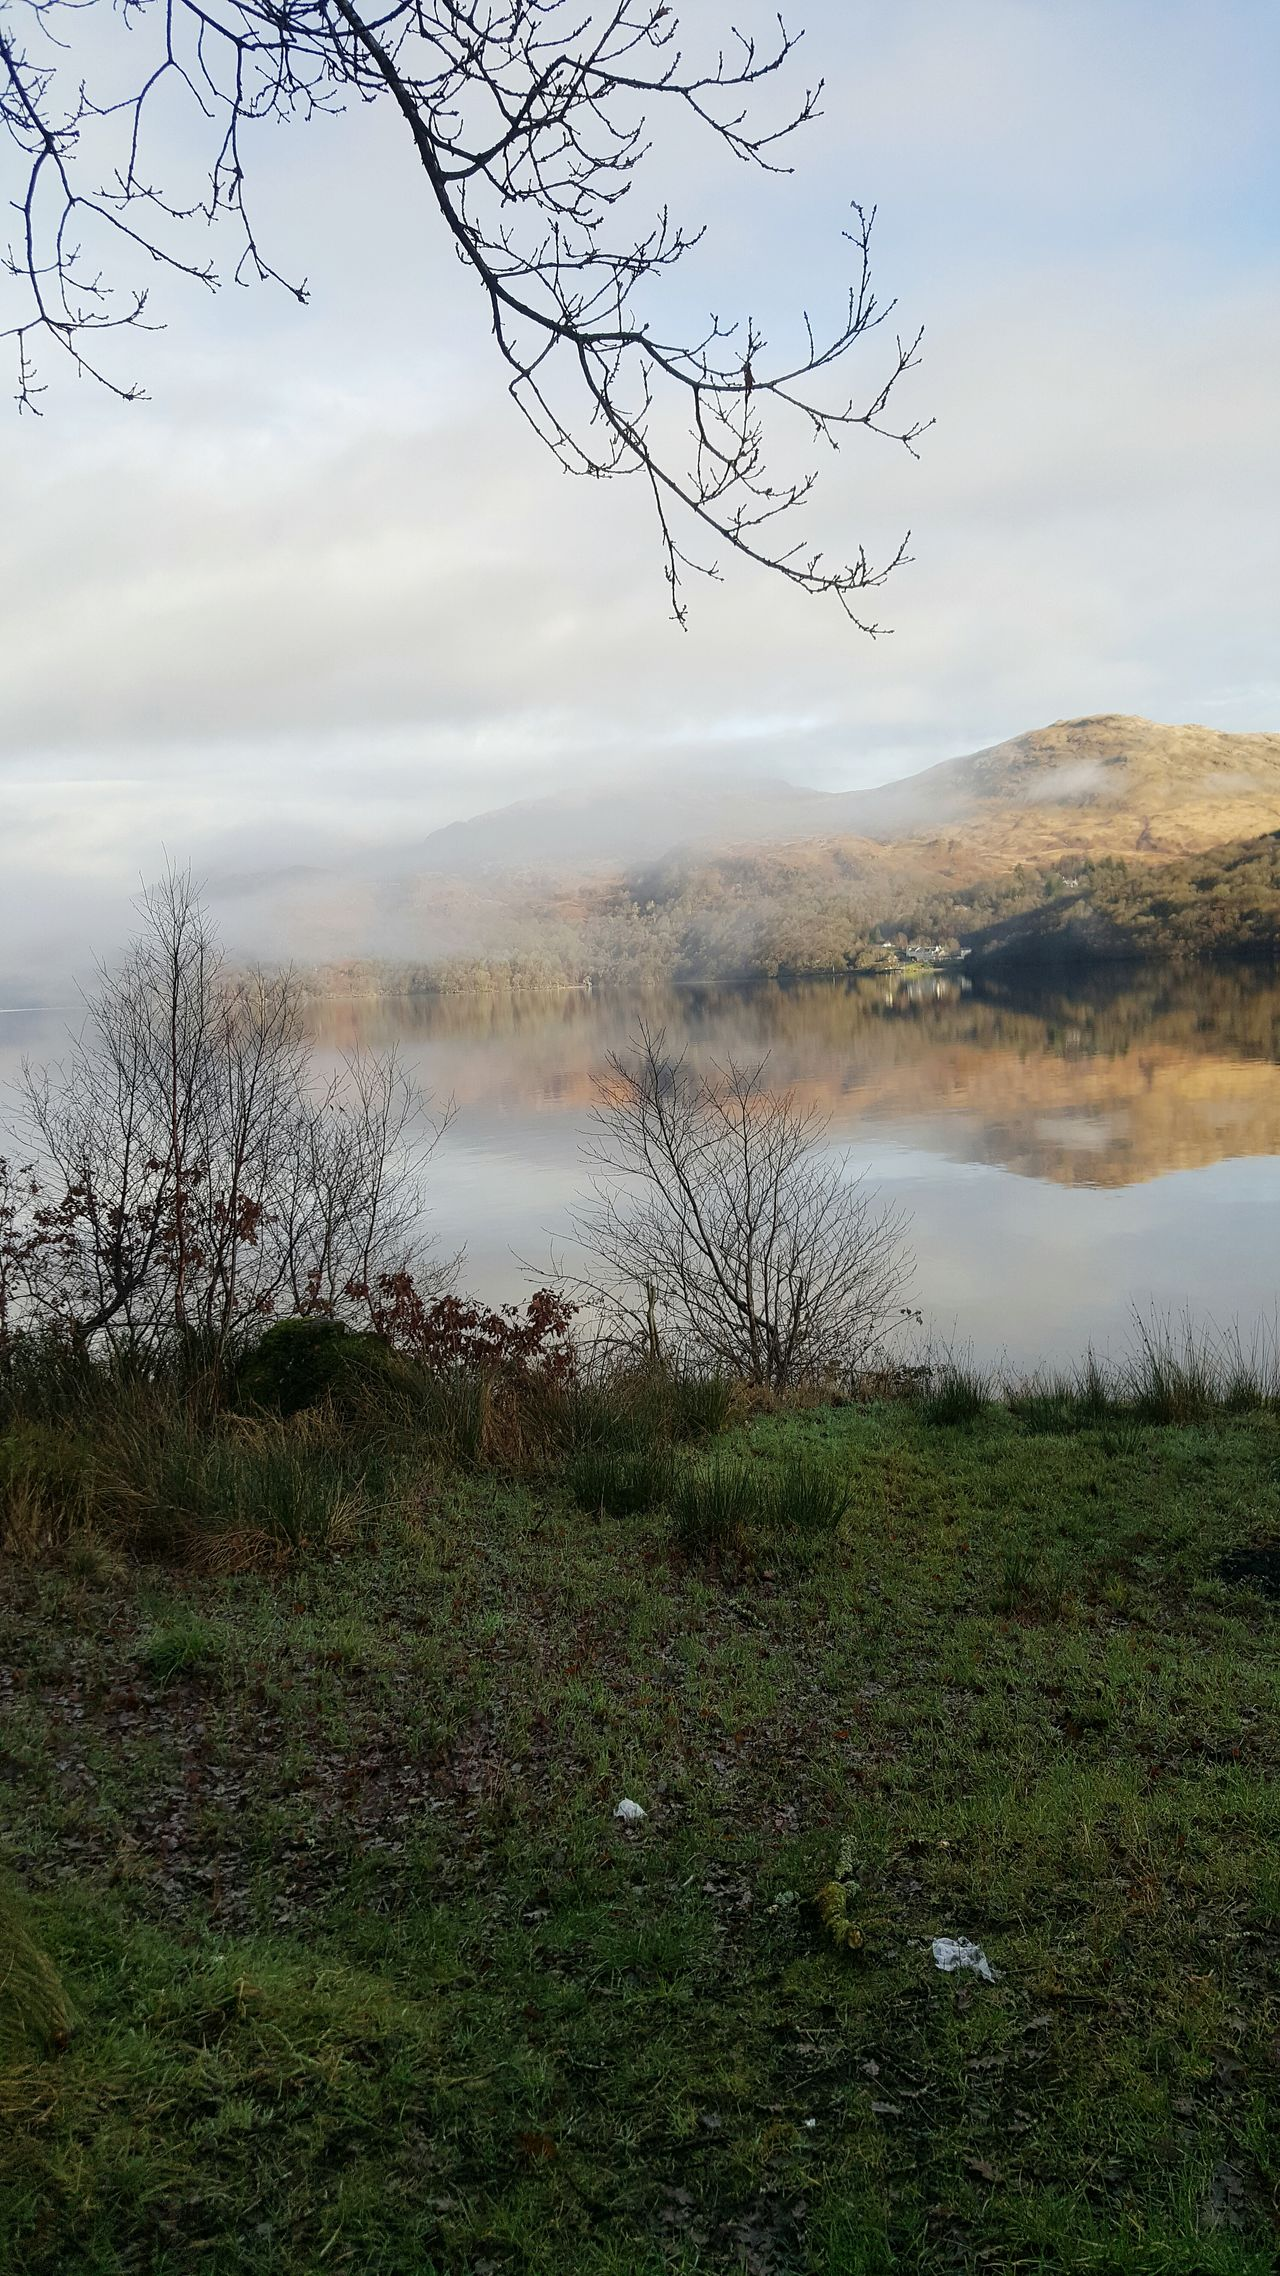 Loch lomond Beauty In Nature Cloud - Sky Outdoors Scenics Day Landscape Mountain Lake Tranquility LochLomond Reflection Water Nature